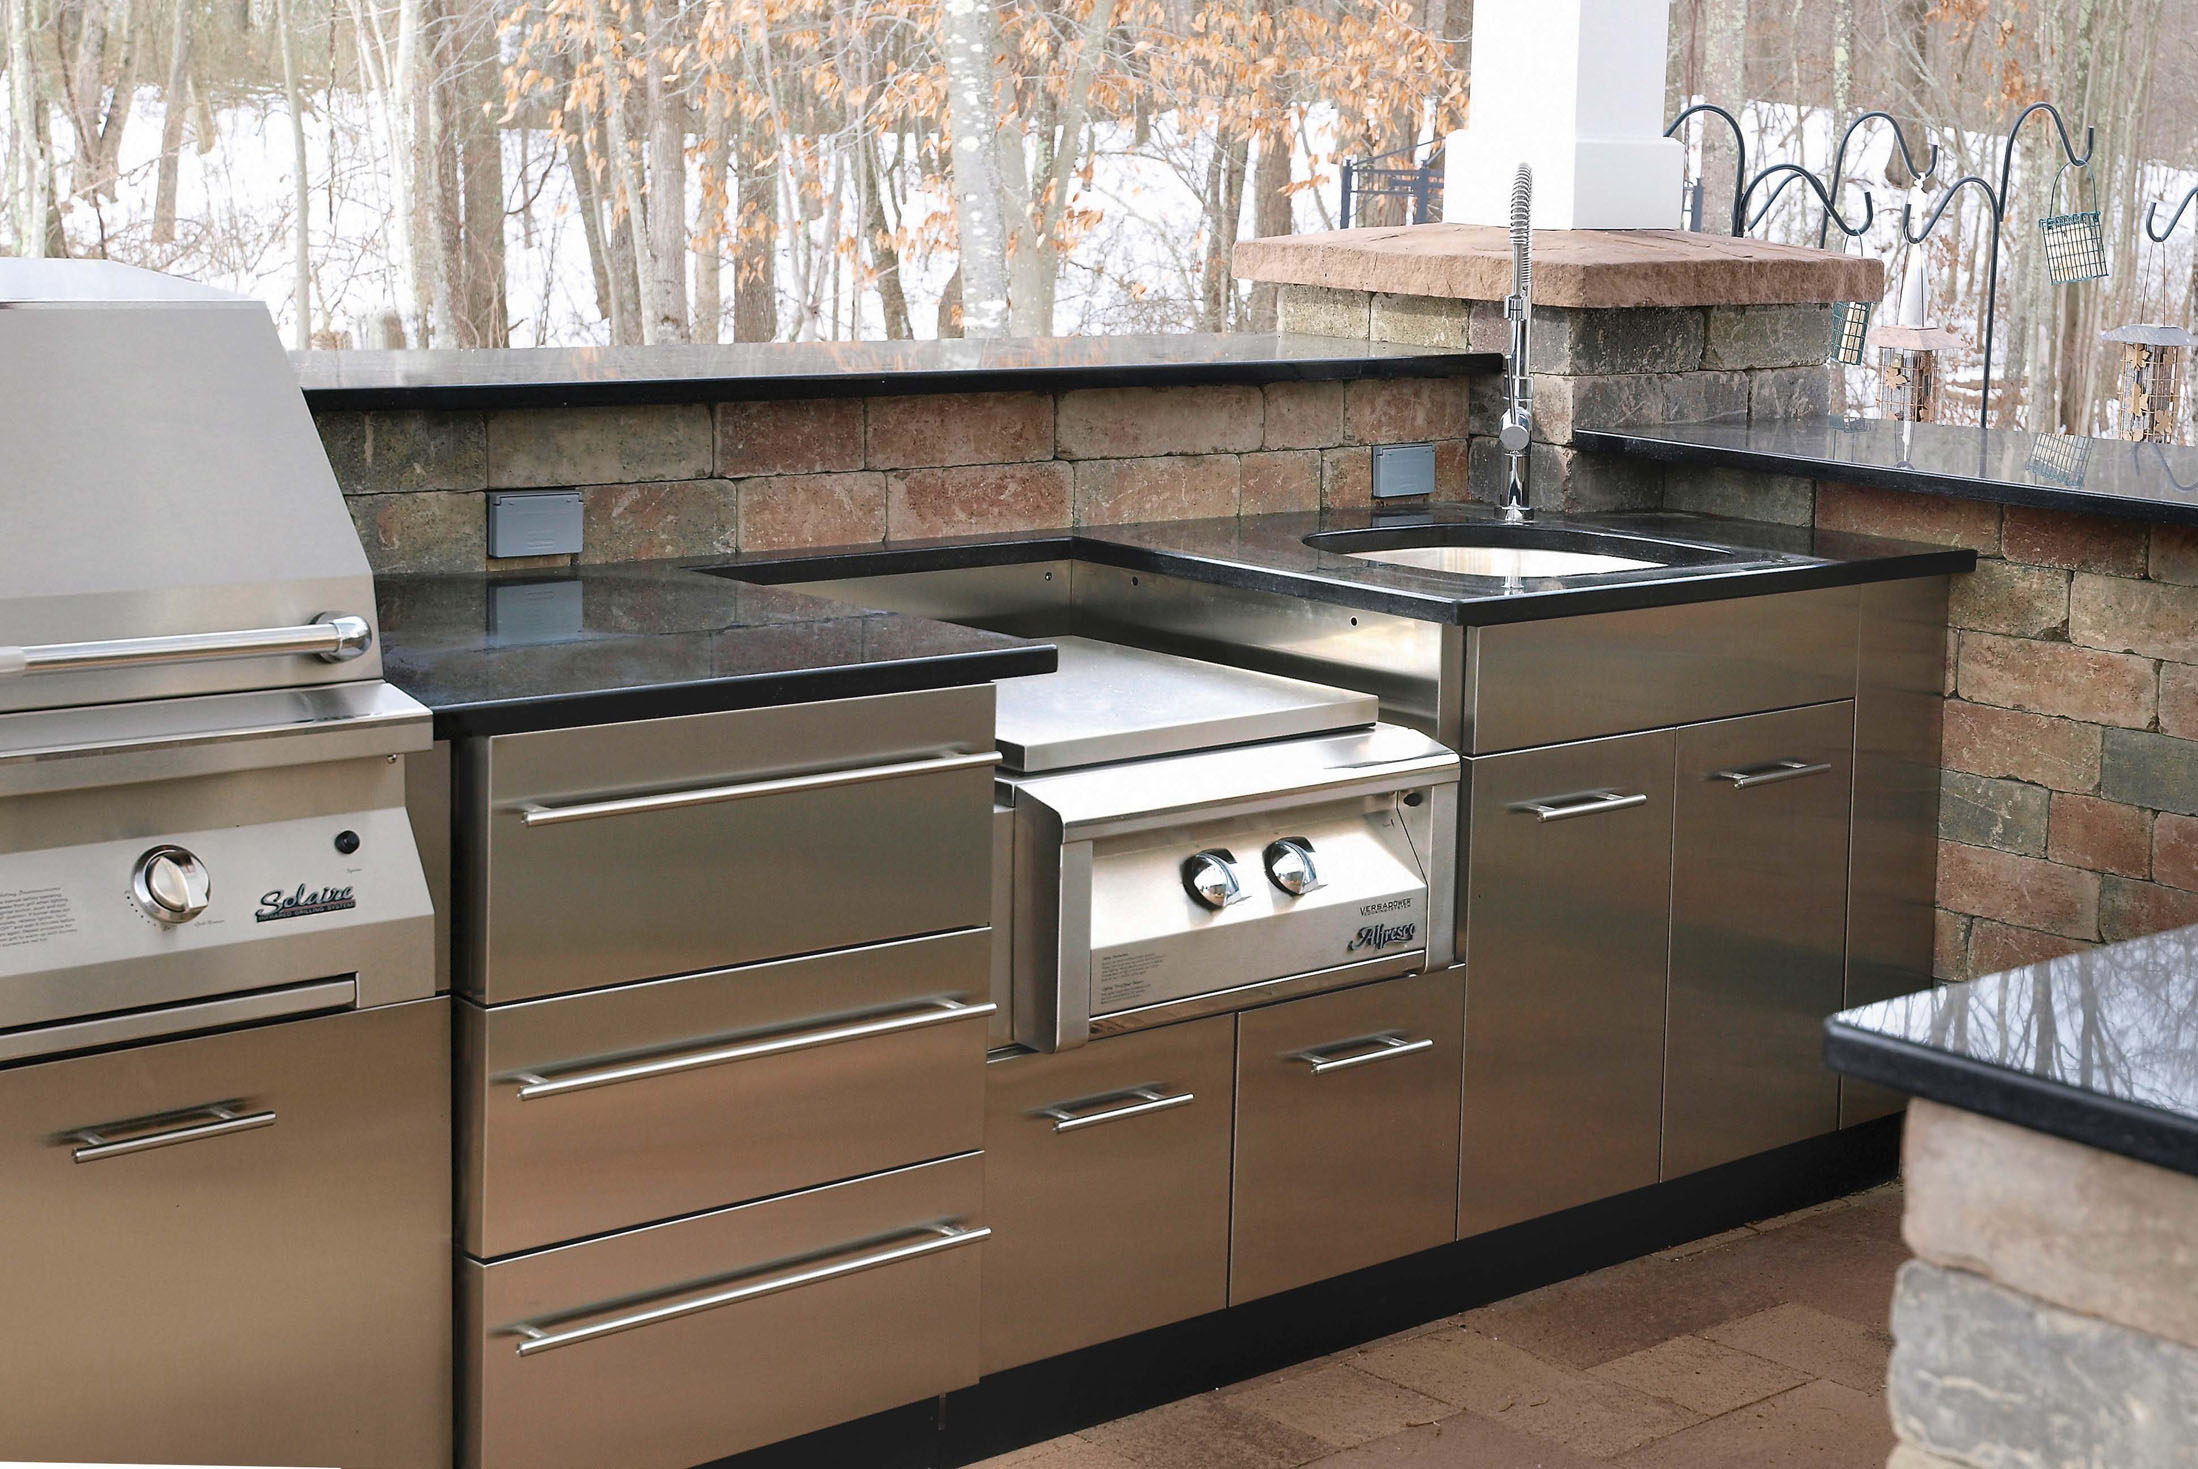 Outdoor Stainless Steel Cabinets Outdoor Stainless Kitchen In Winter In Ct Danver